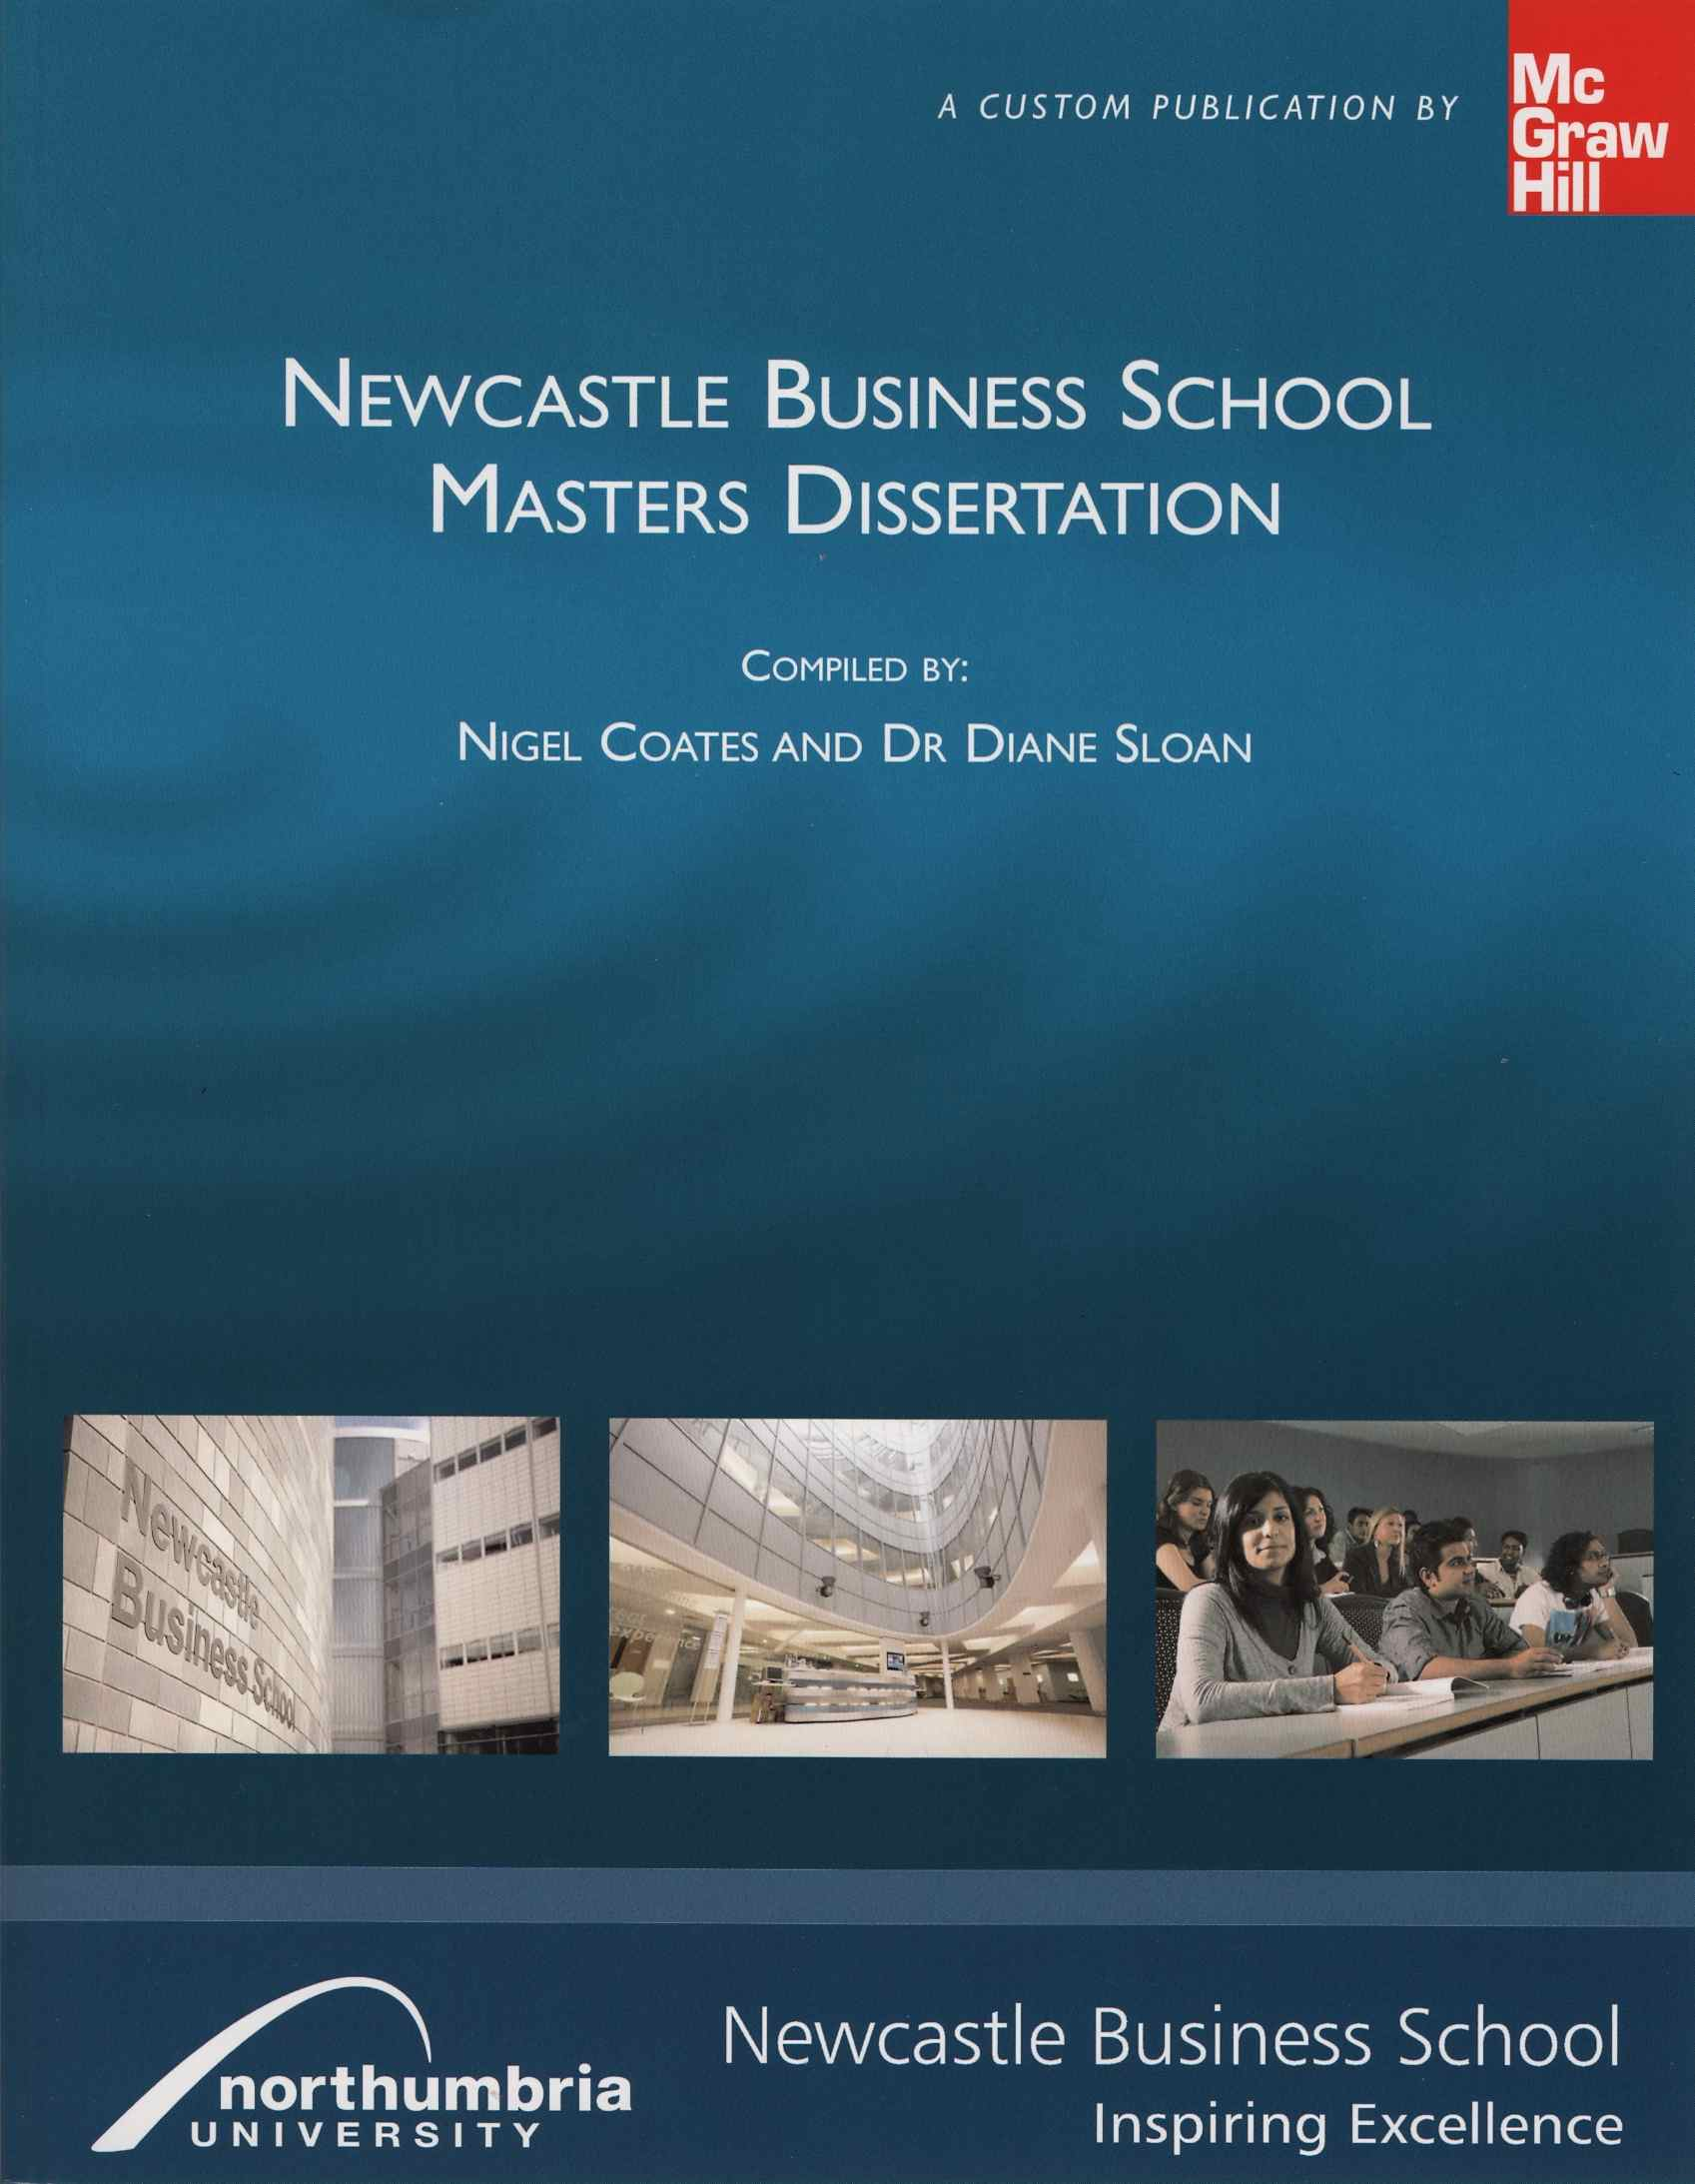 Newcastle Business School Masters Dissertation